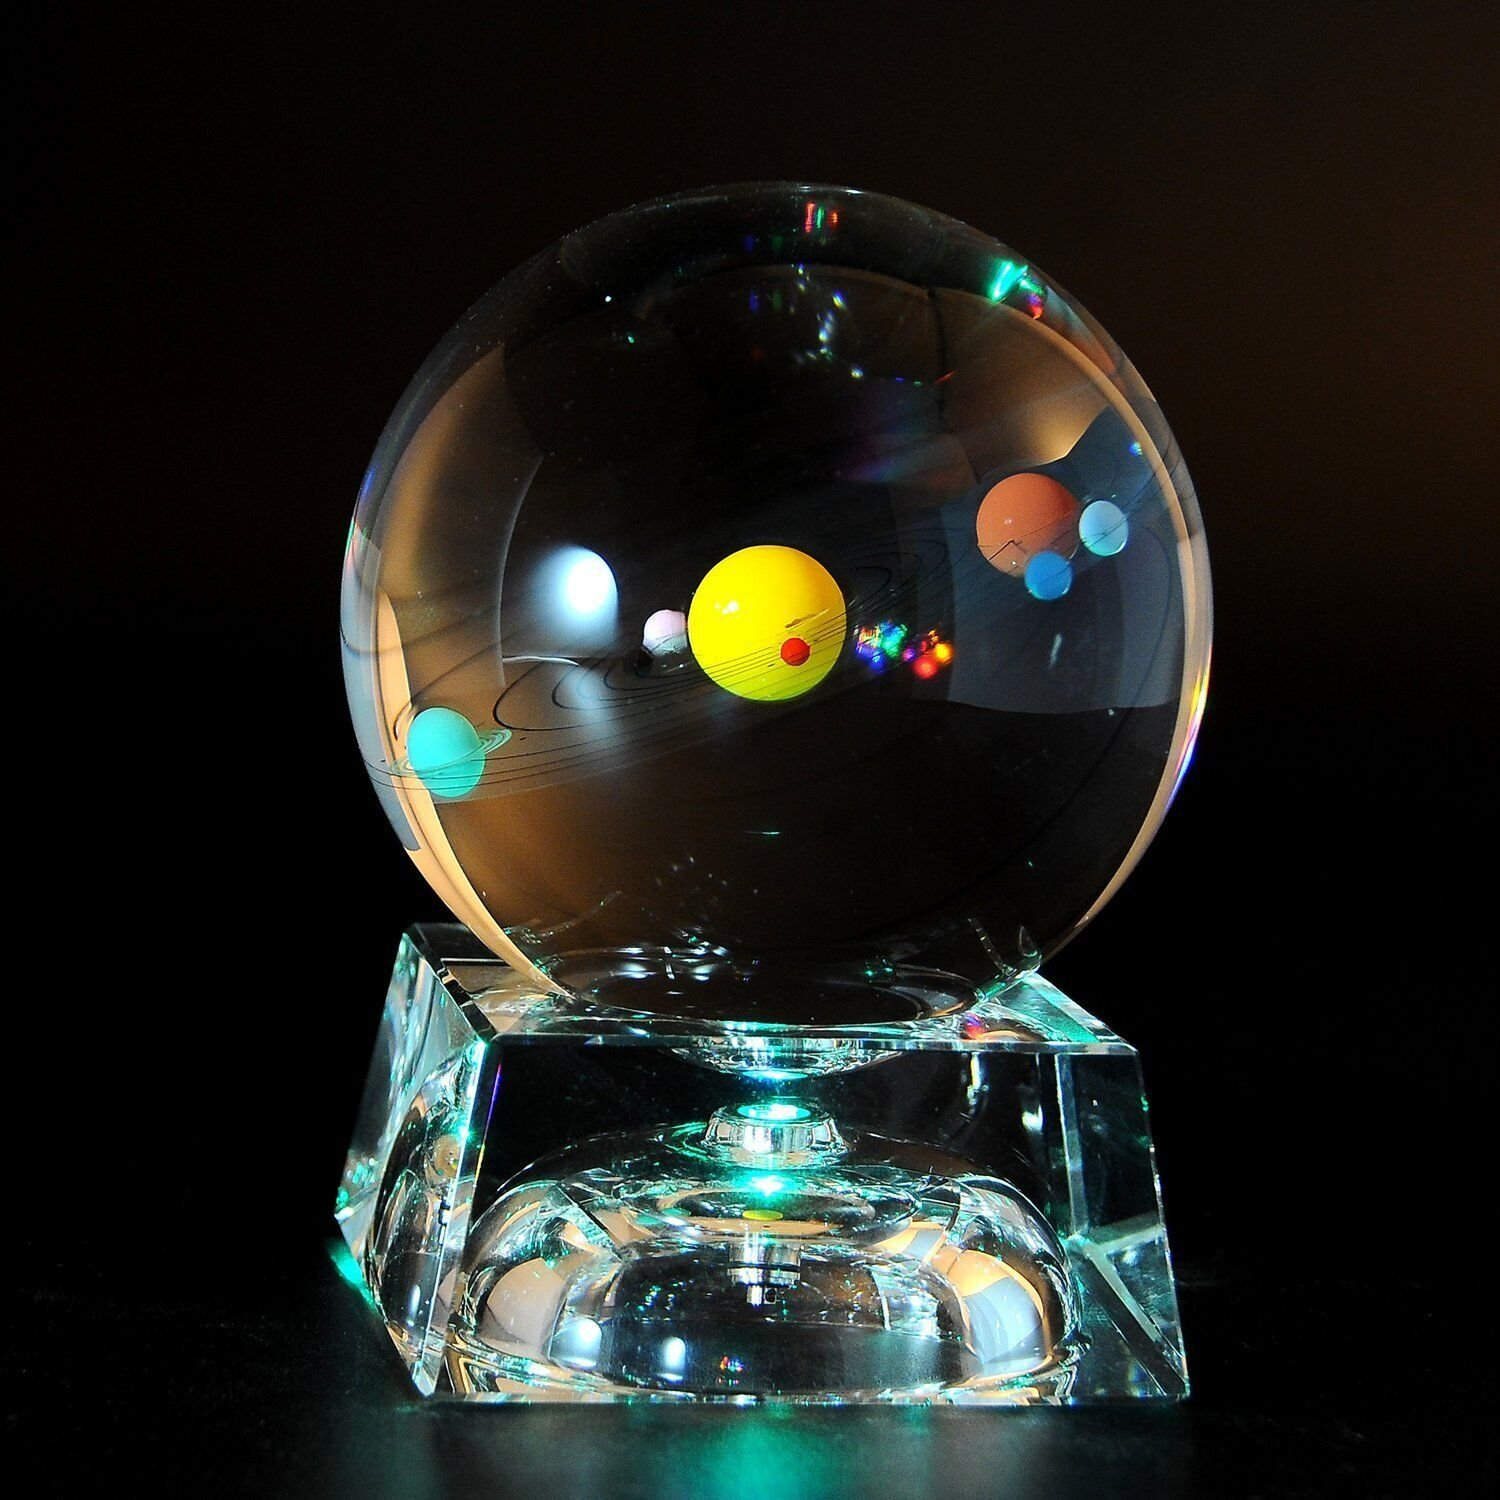 Solar System 3D Crystal Ball with LED lamp Base Clear 80mm (3.15 inch) Glass Sphere Best Birthday Gift for Kids, Teacher of Physics, Astronomer, Lover of the Universe, Boyfriend, Girlfriend, Classma by Vanory